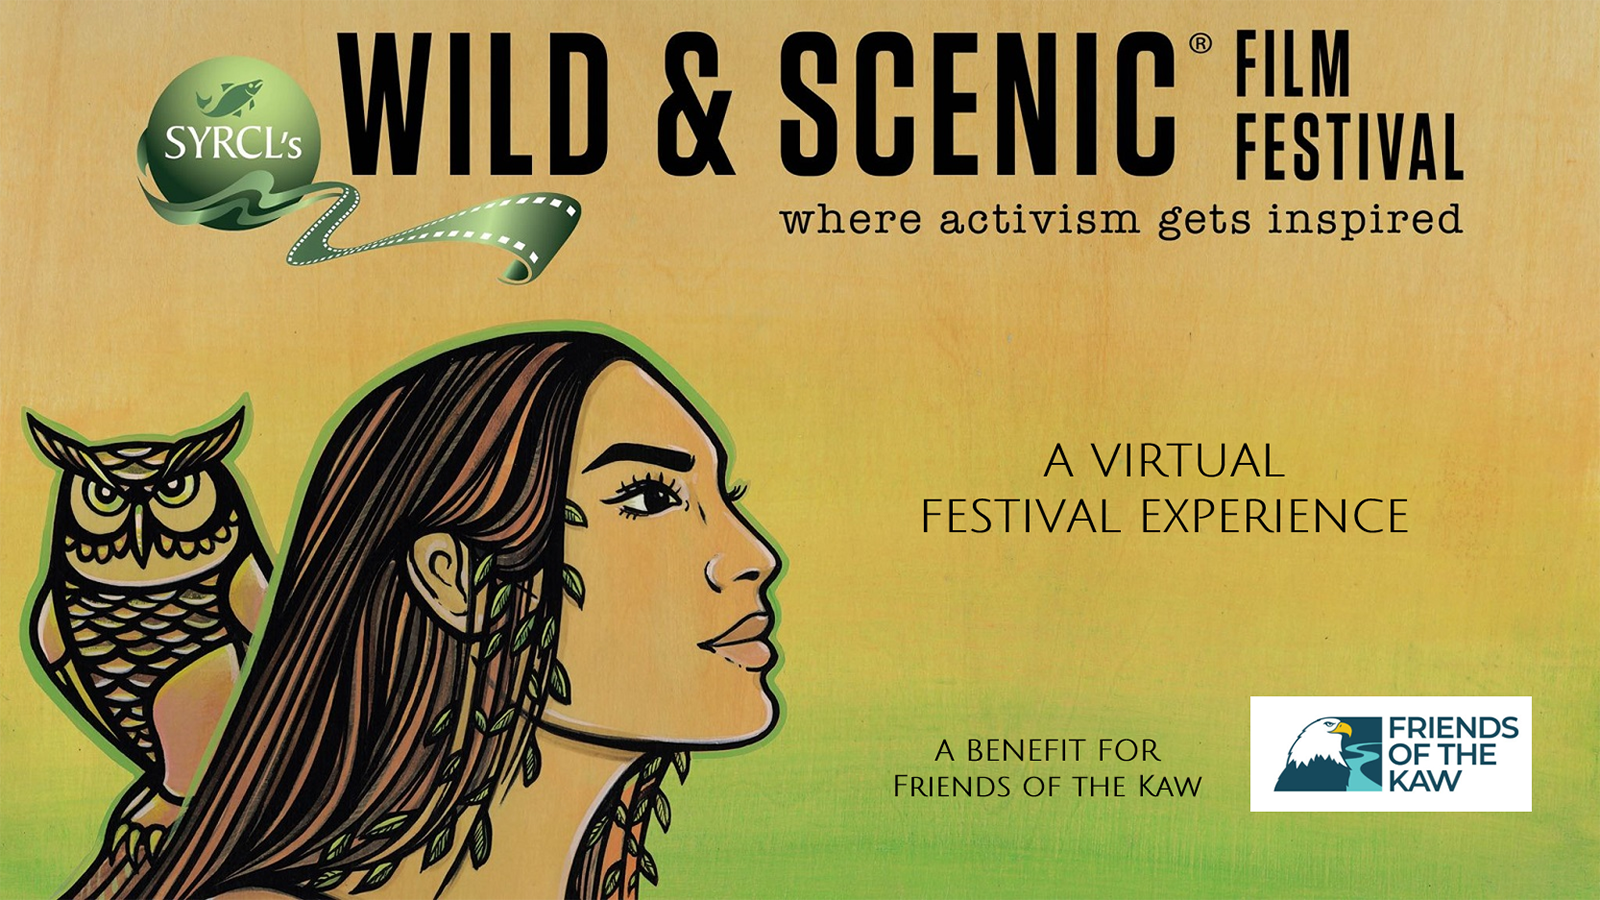 Friends of the Kaw Presents SYRCL's Wild & Scenic Film Festival On Tour